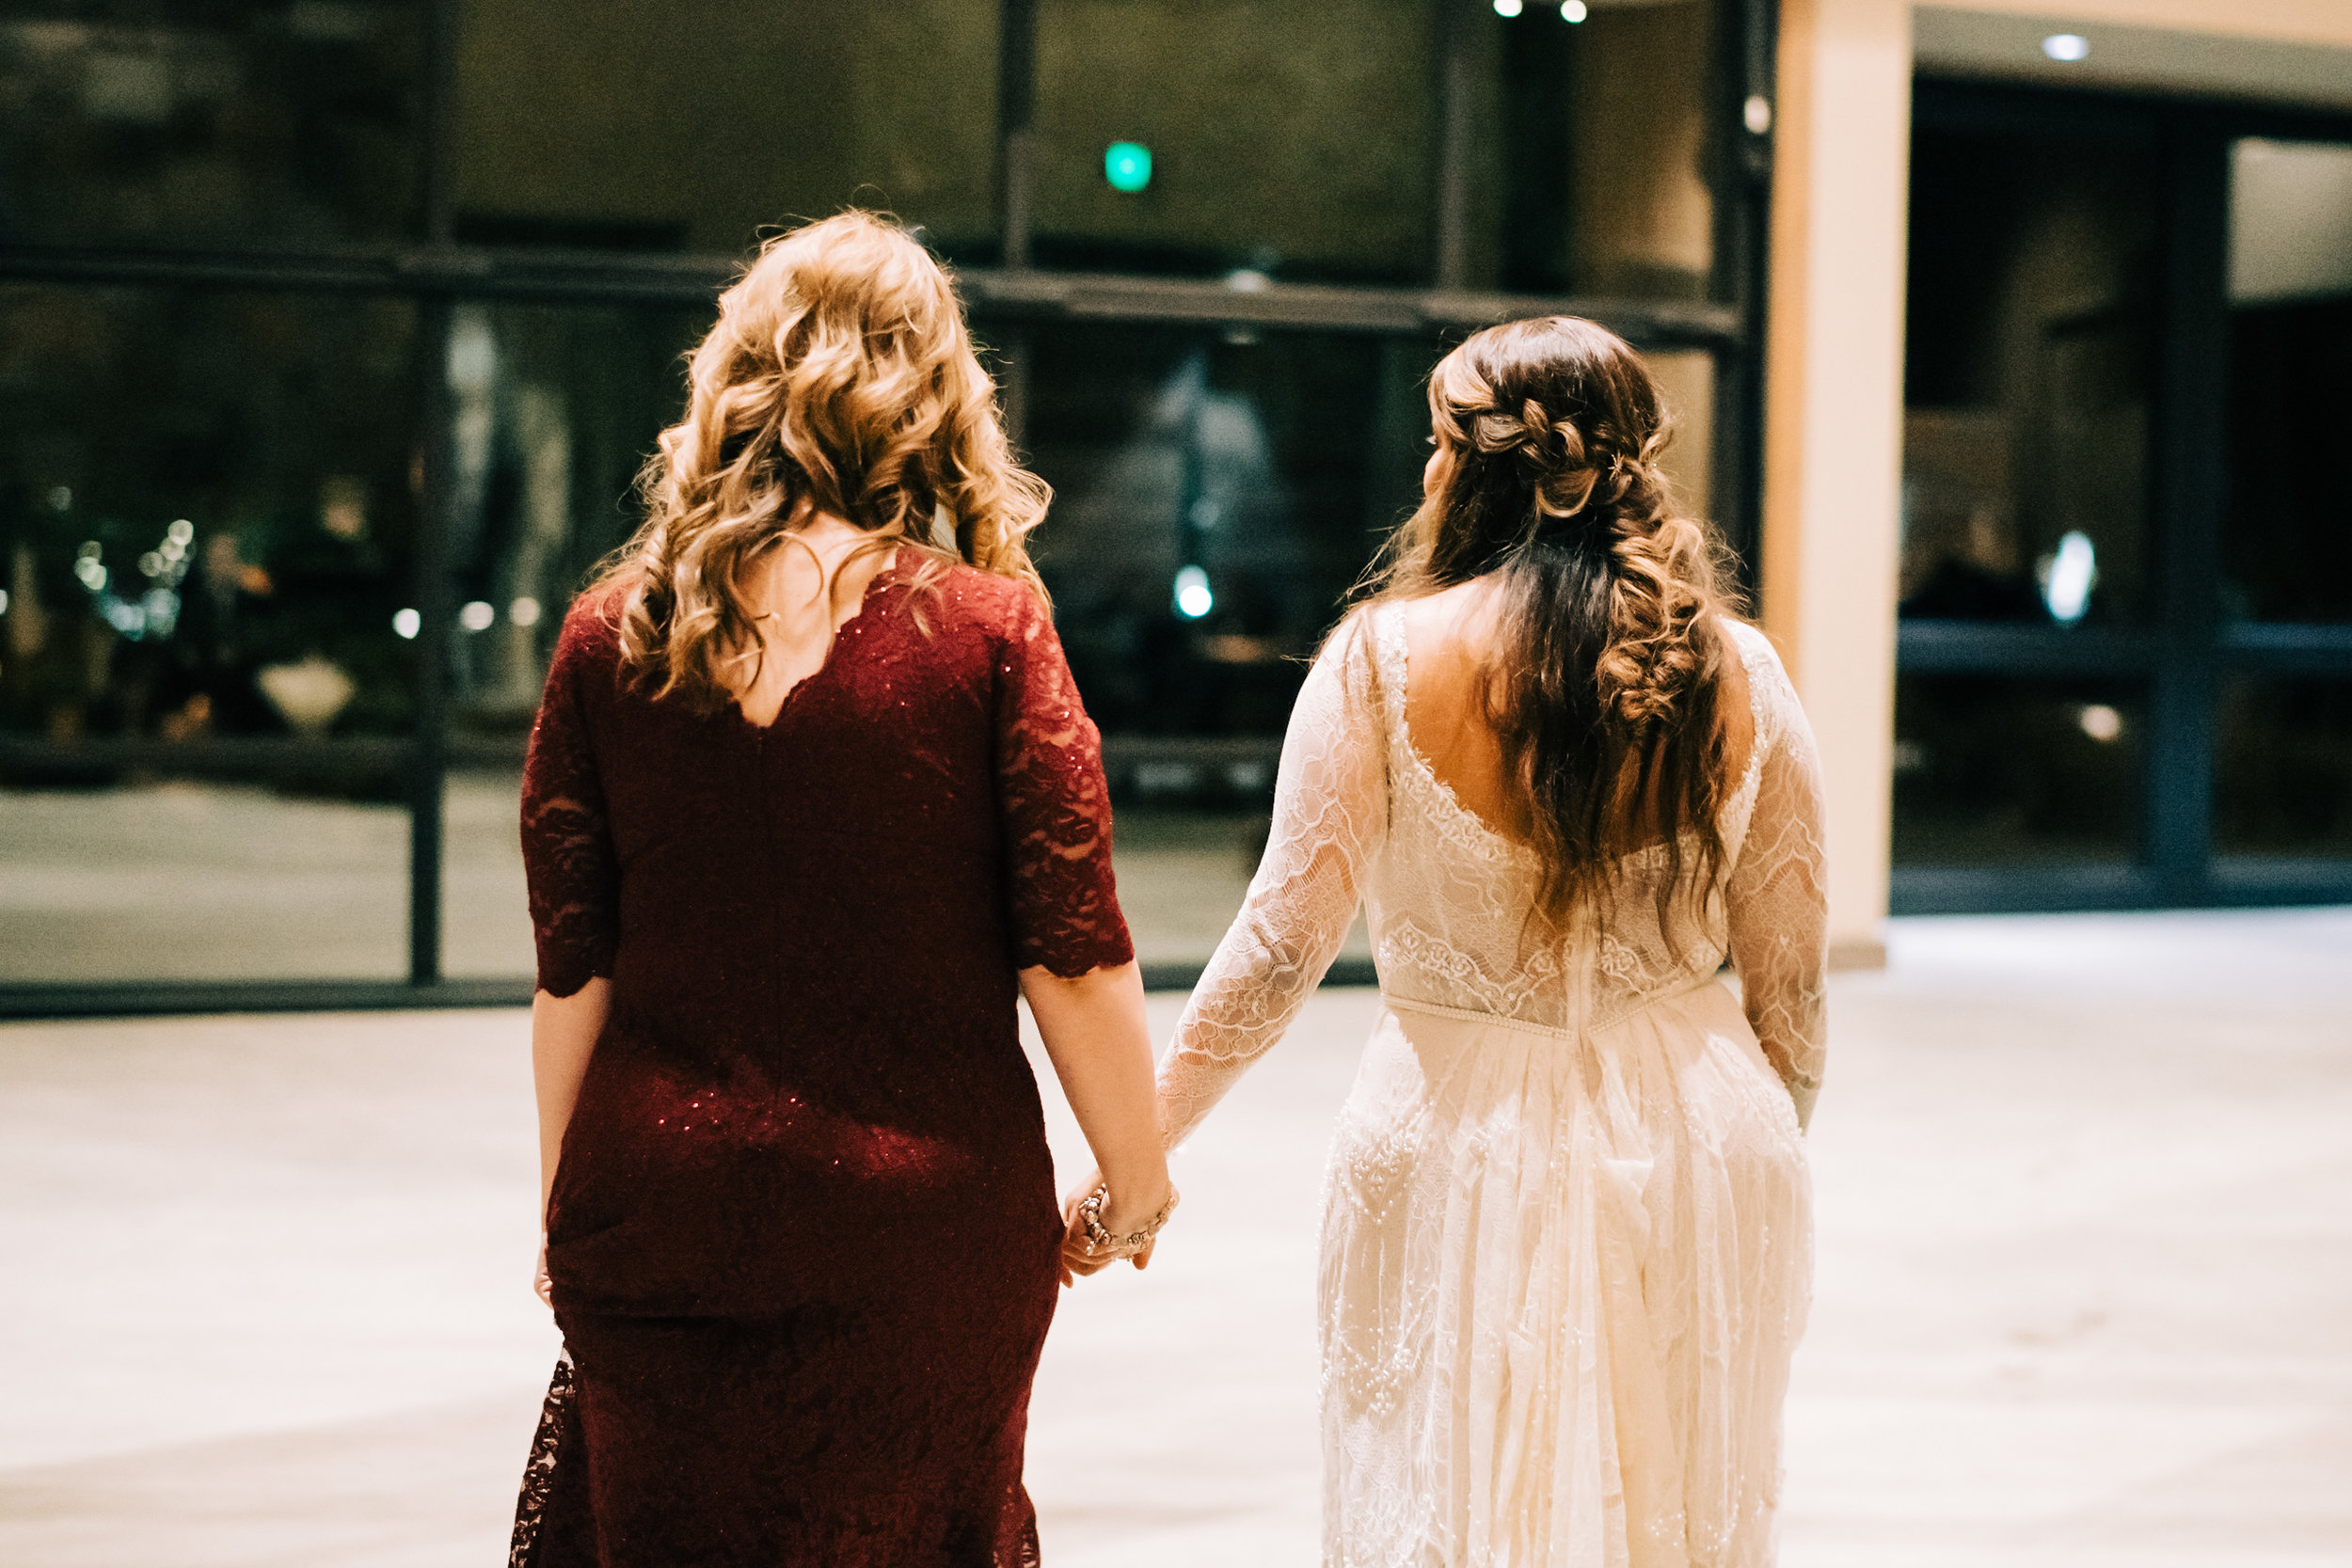 bay area nontraditional wedding photographer southern california boho wedding love light magic san francisco oakland northern california-1189.jpg